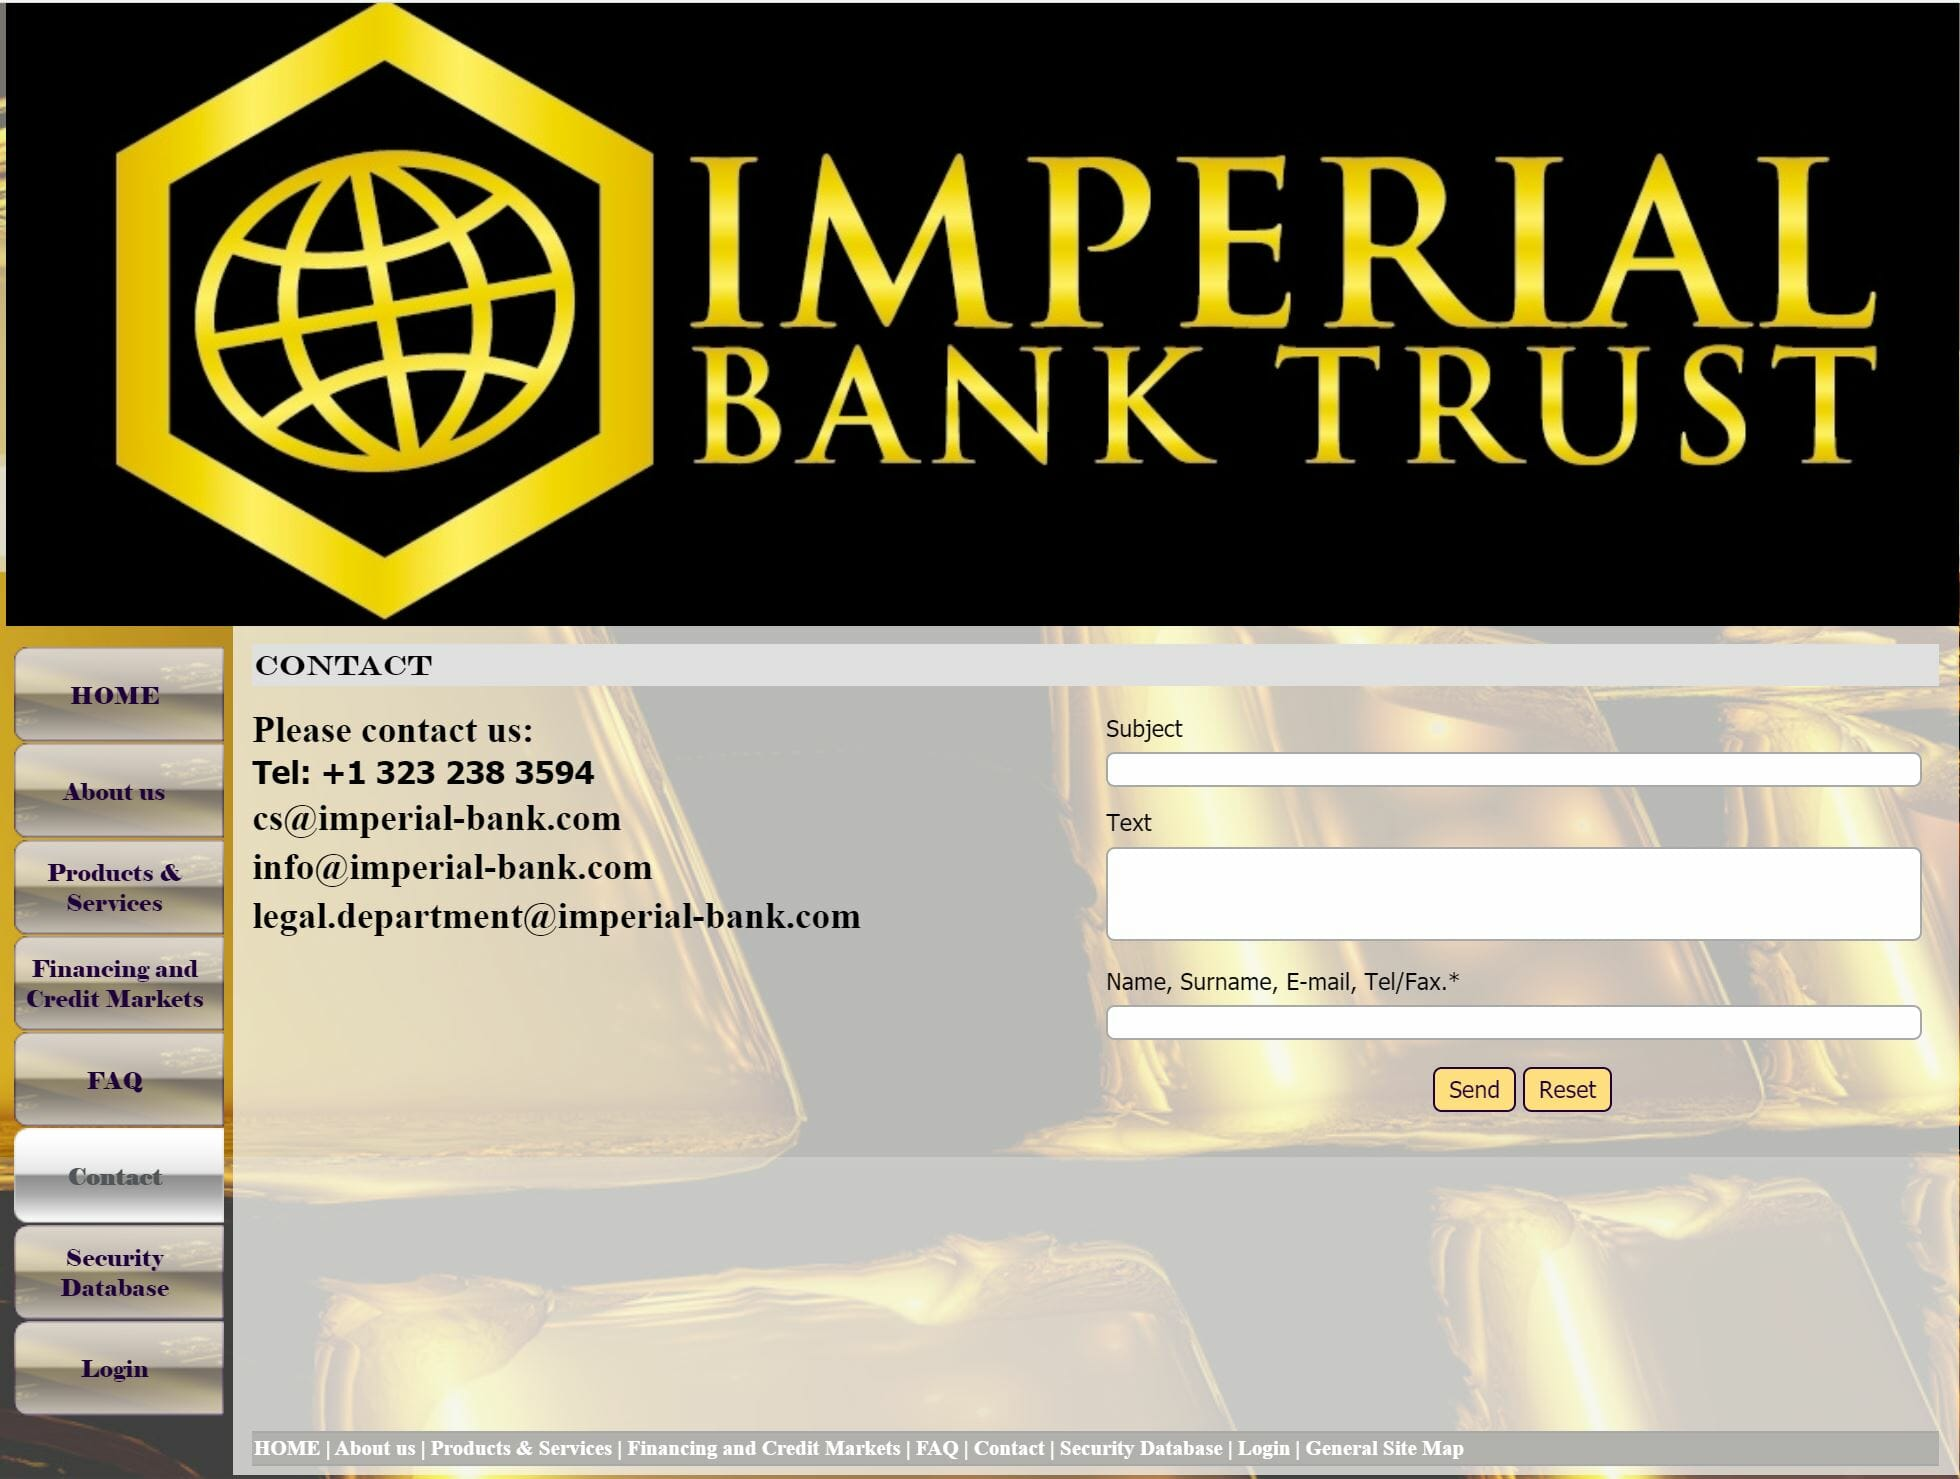 Imperial Bank Trust